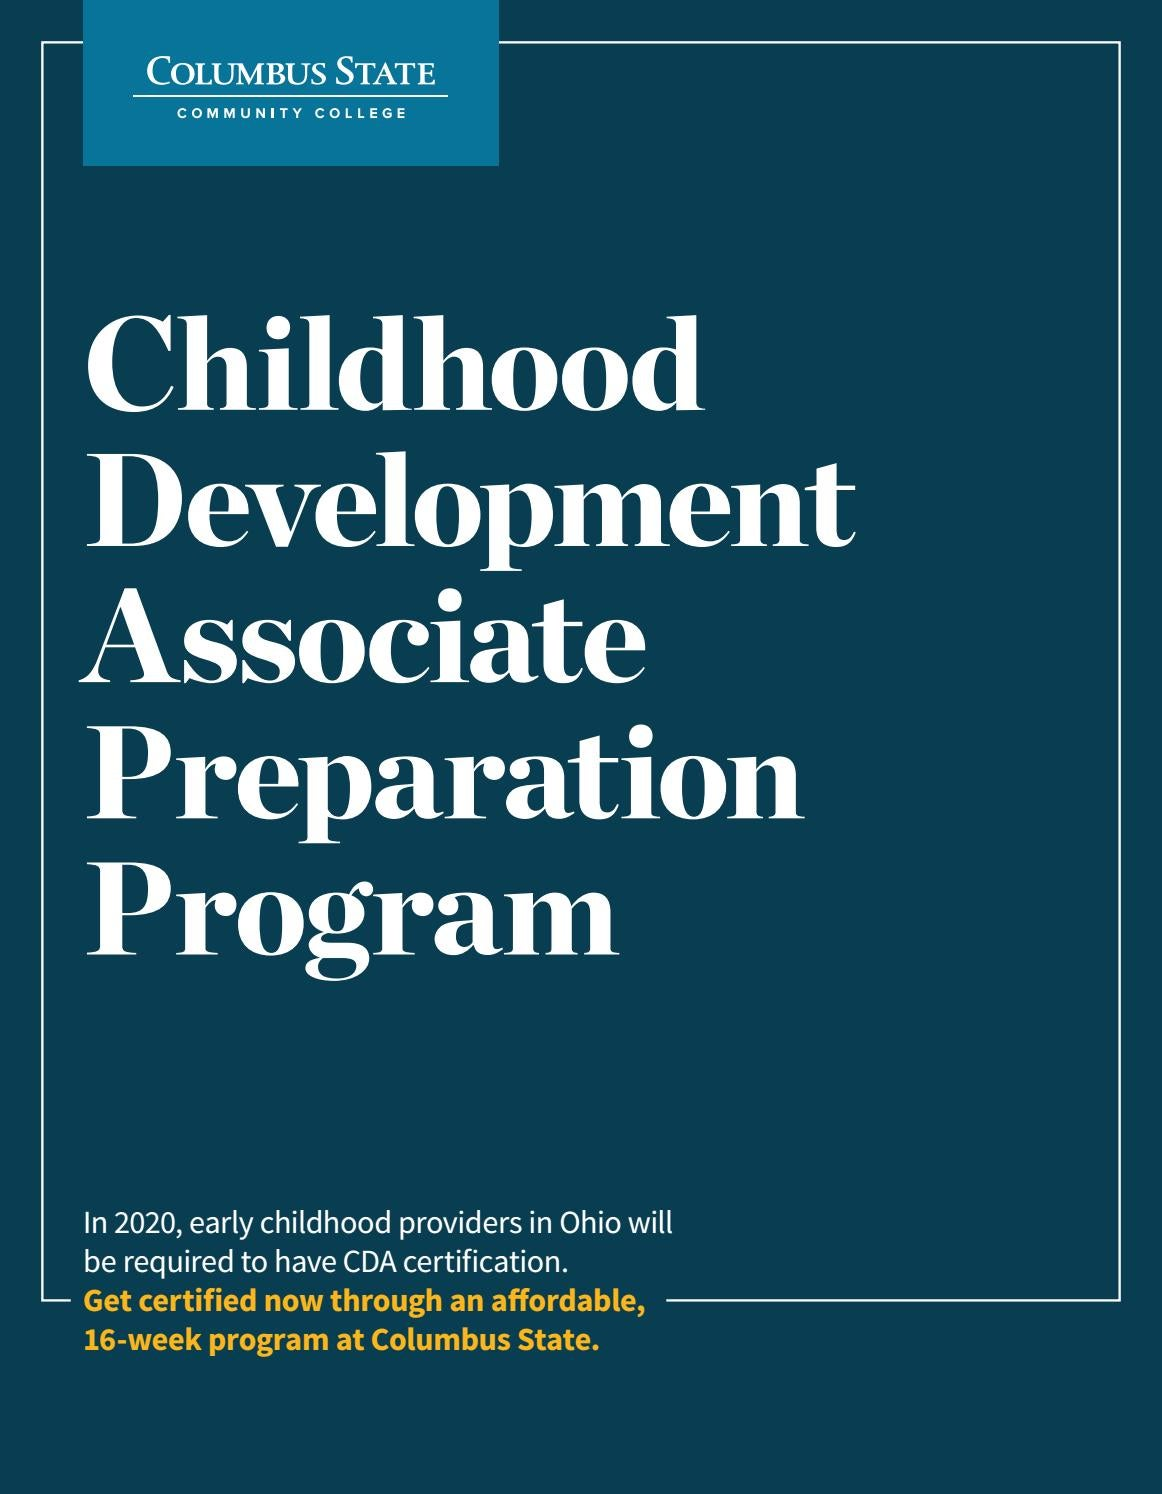 Child development associate cda credential by tony goins issuu 1betcityfo Choice Image